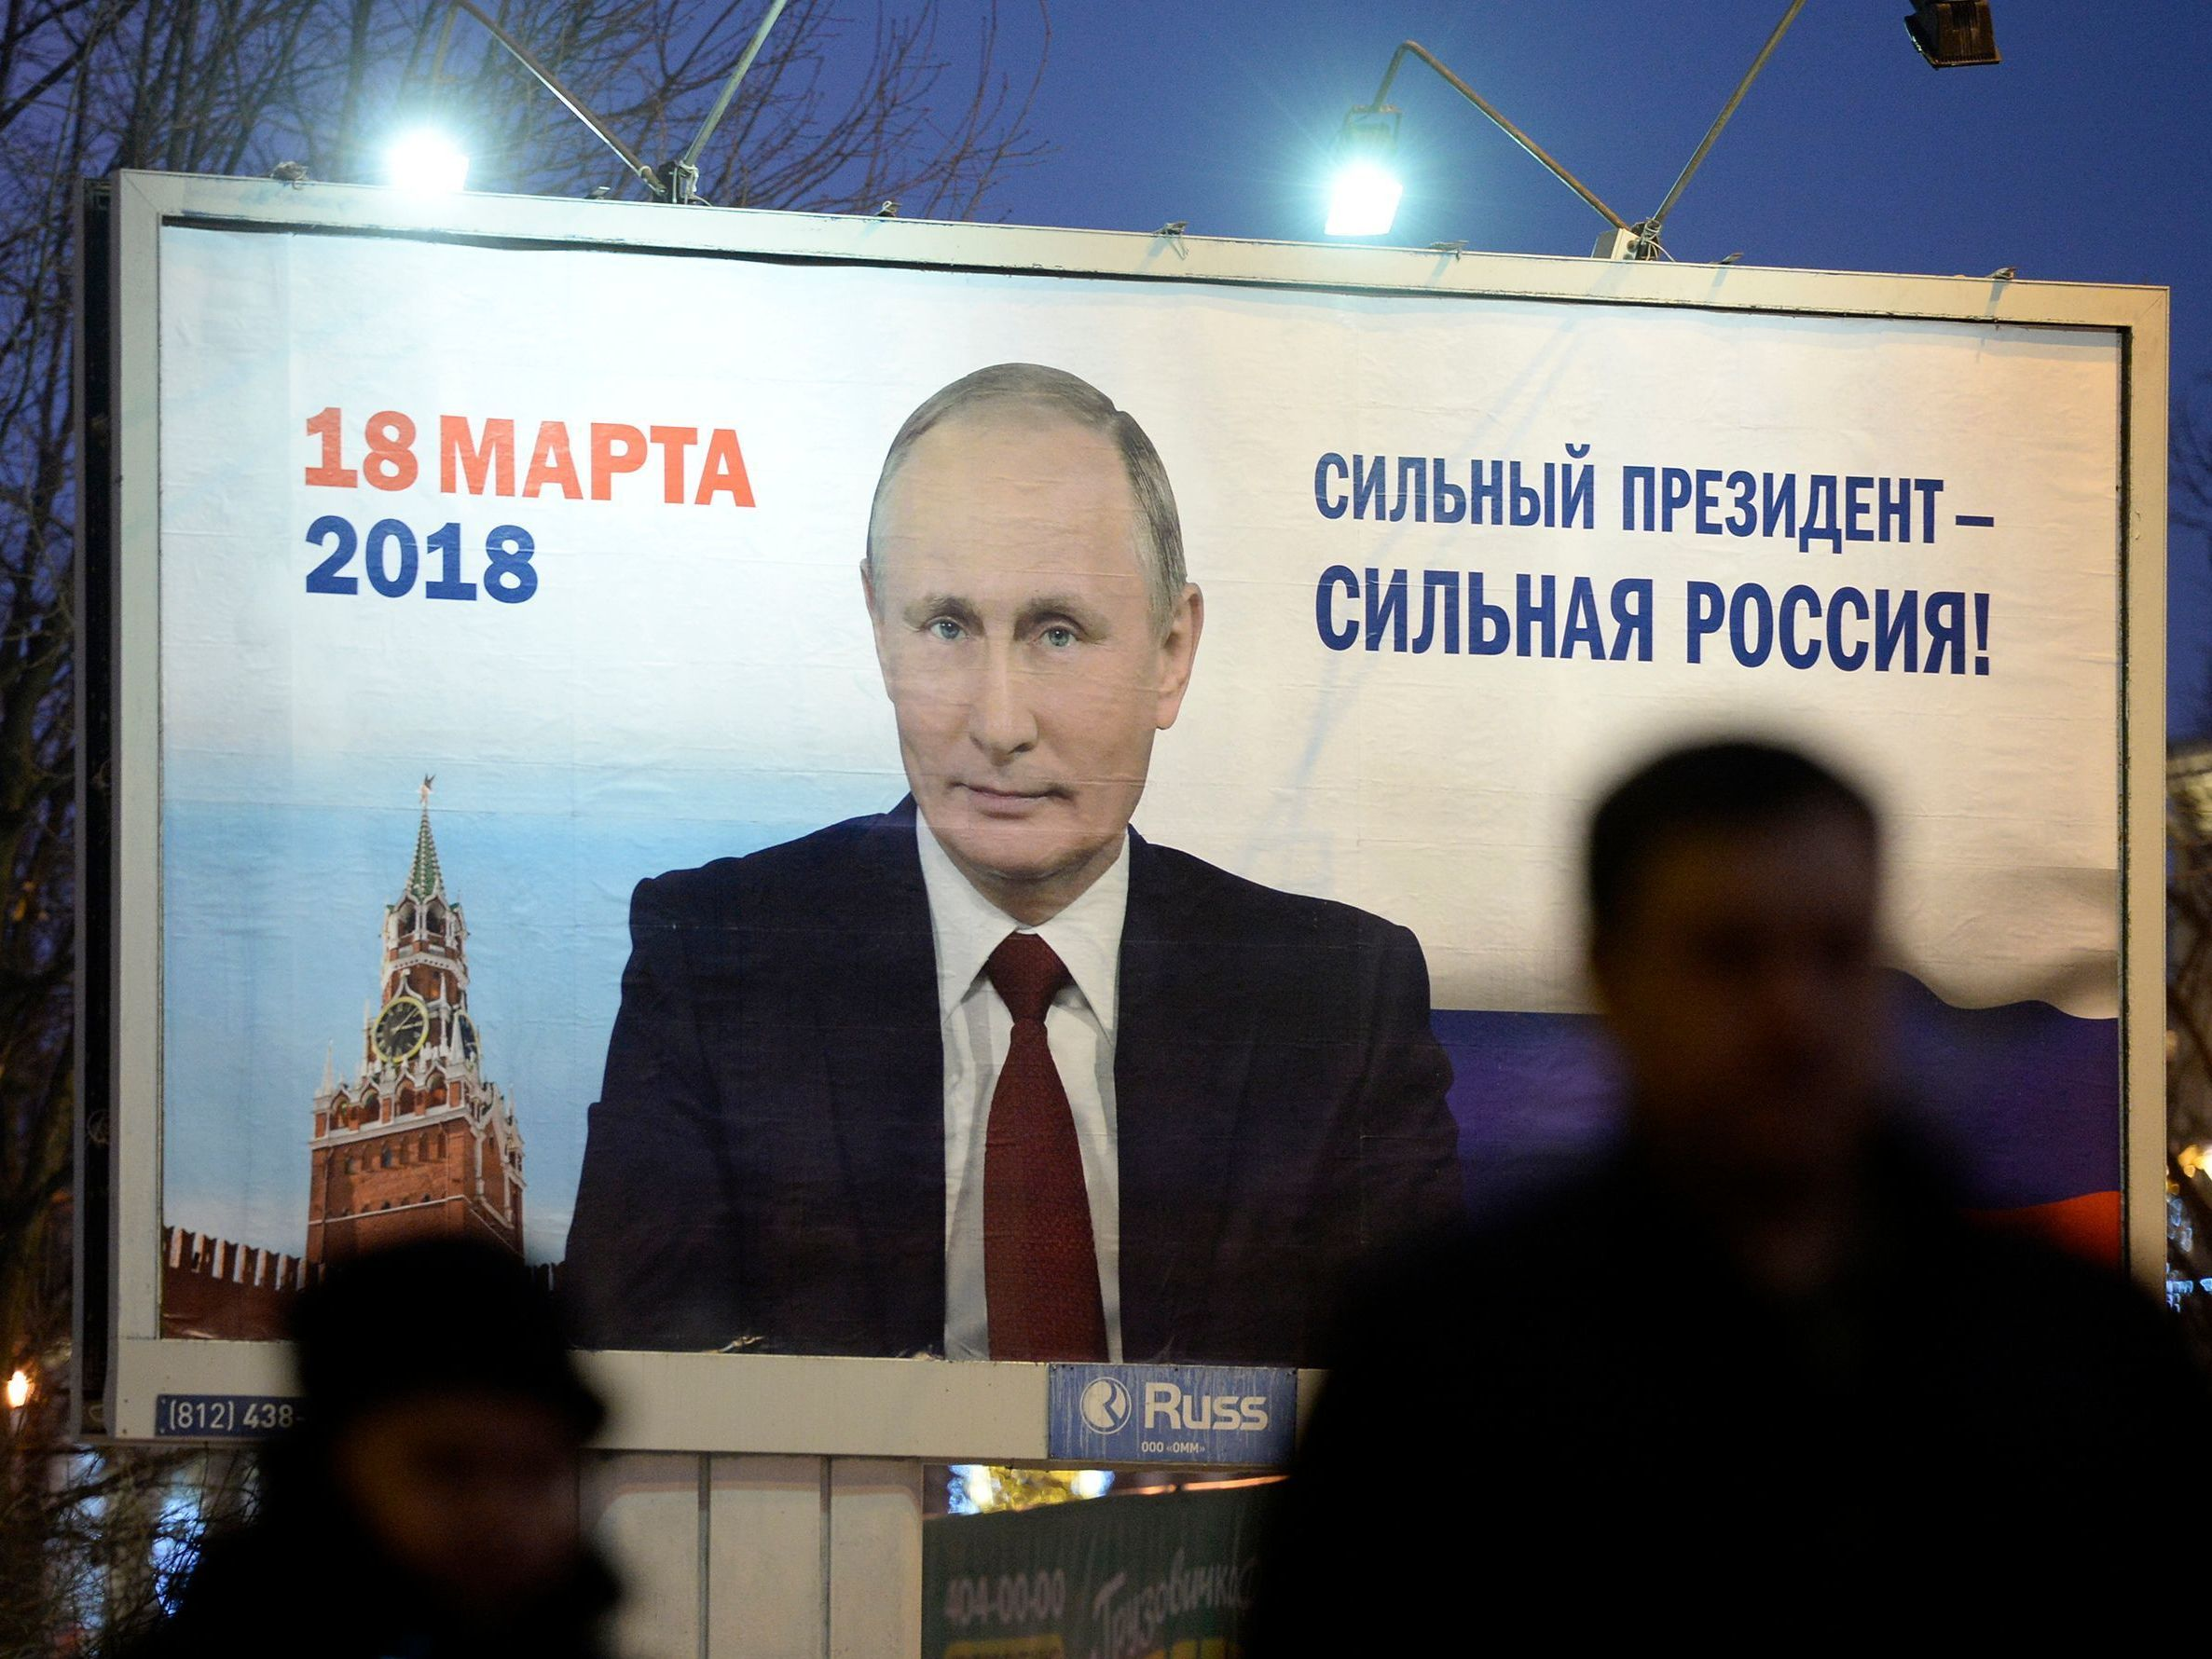 A billboard in Saint Petersburg shows an image of Russia's President Vladimir Putin in January 2018. The sign says,